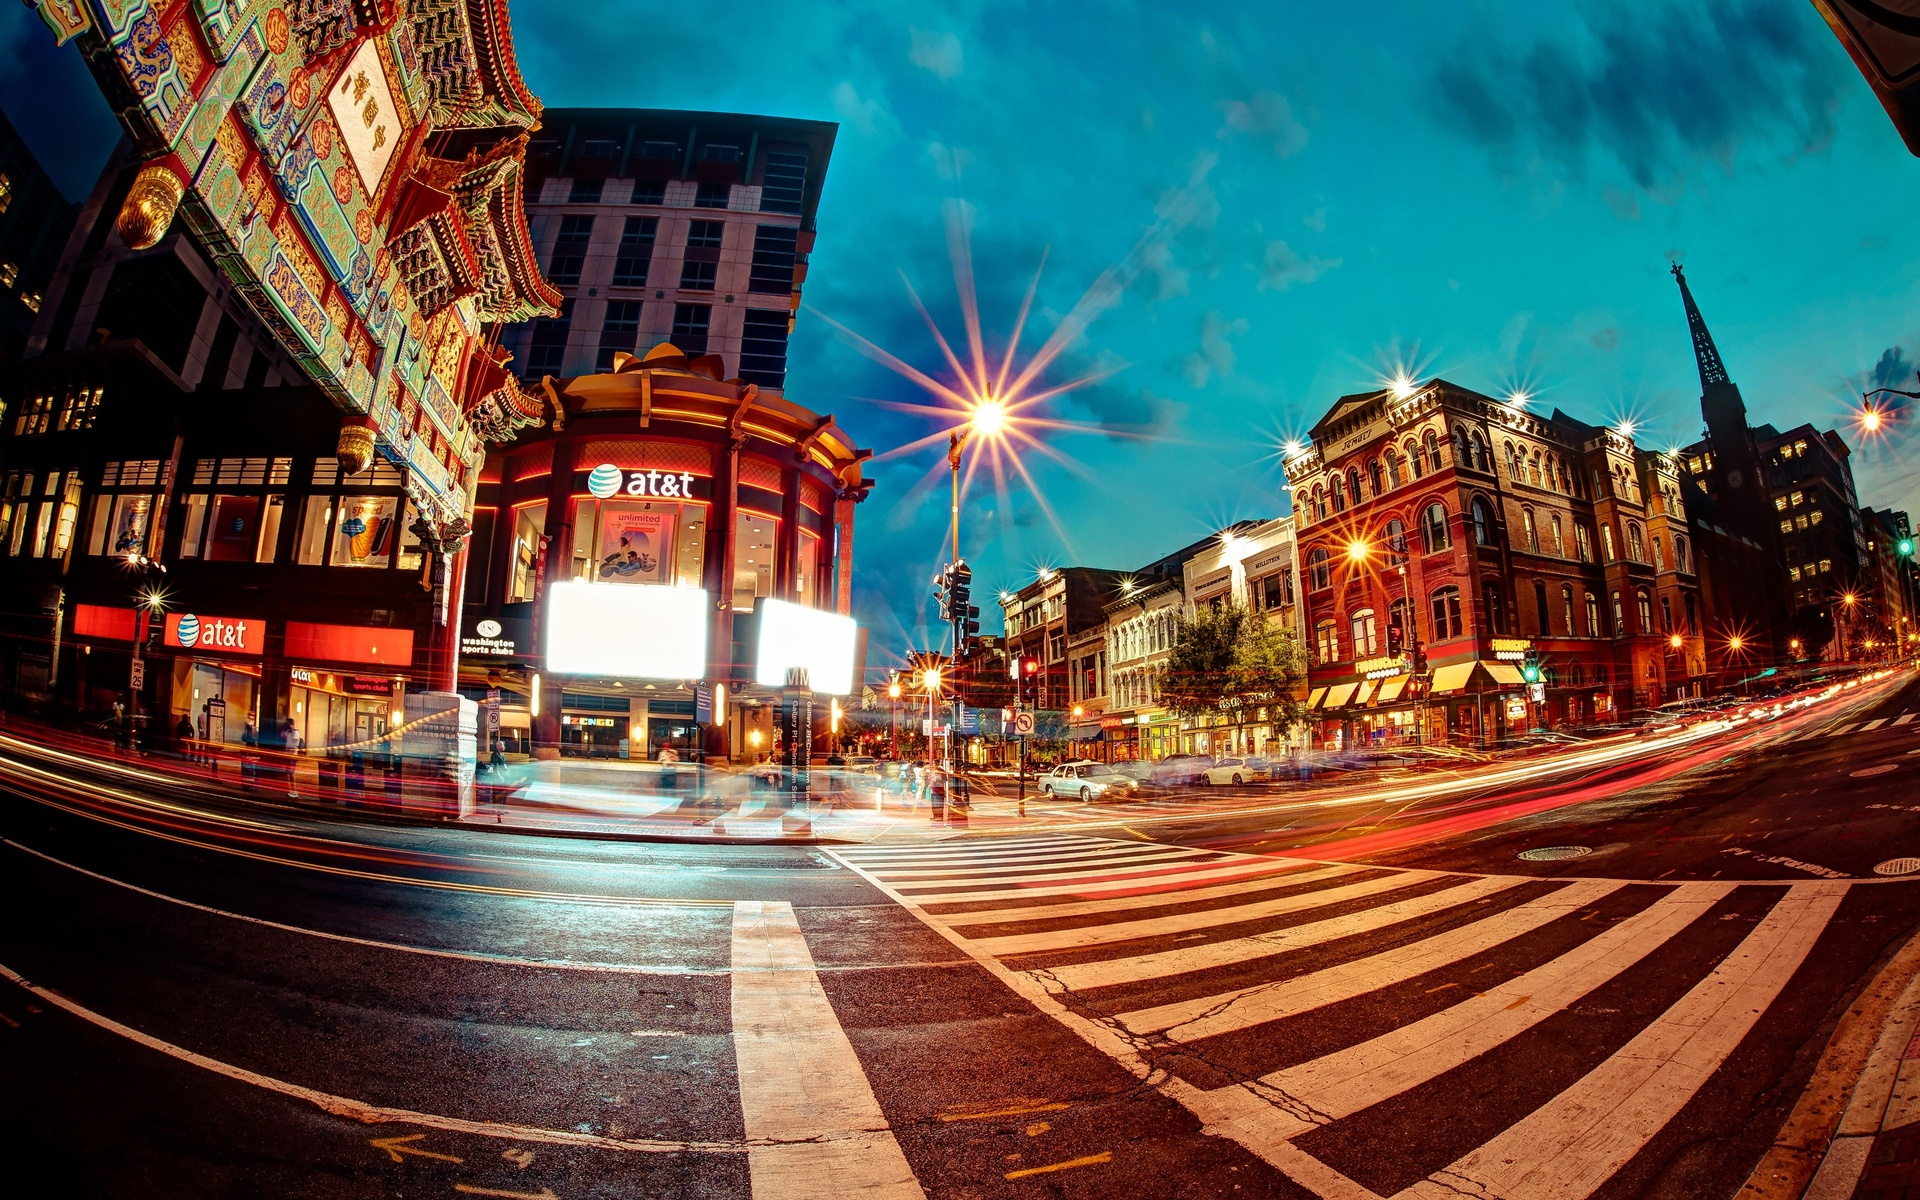 chinatown in washington, dc full hd wallpaper and background image